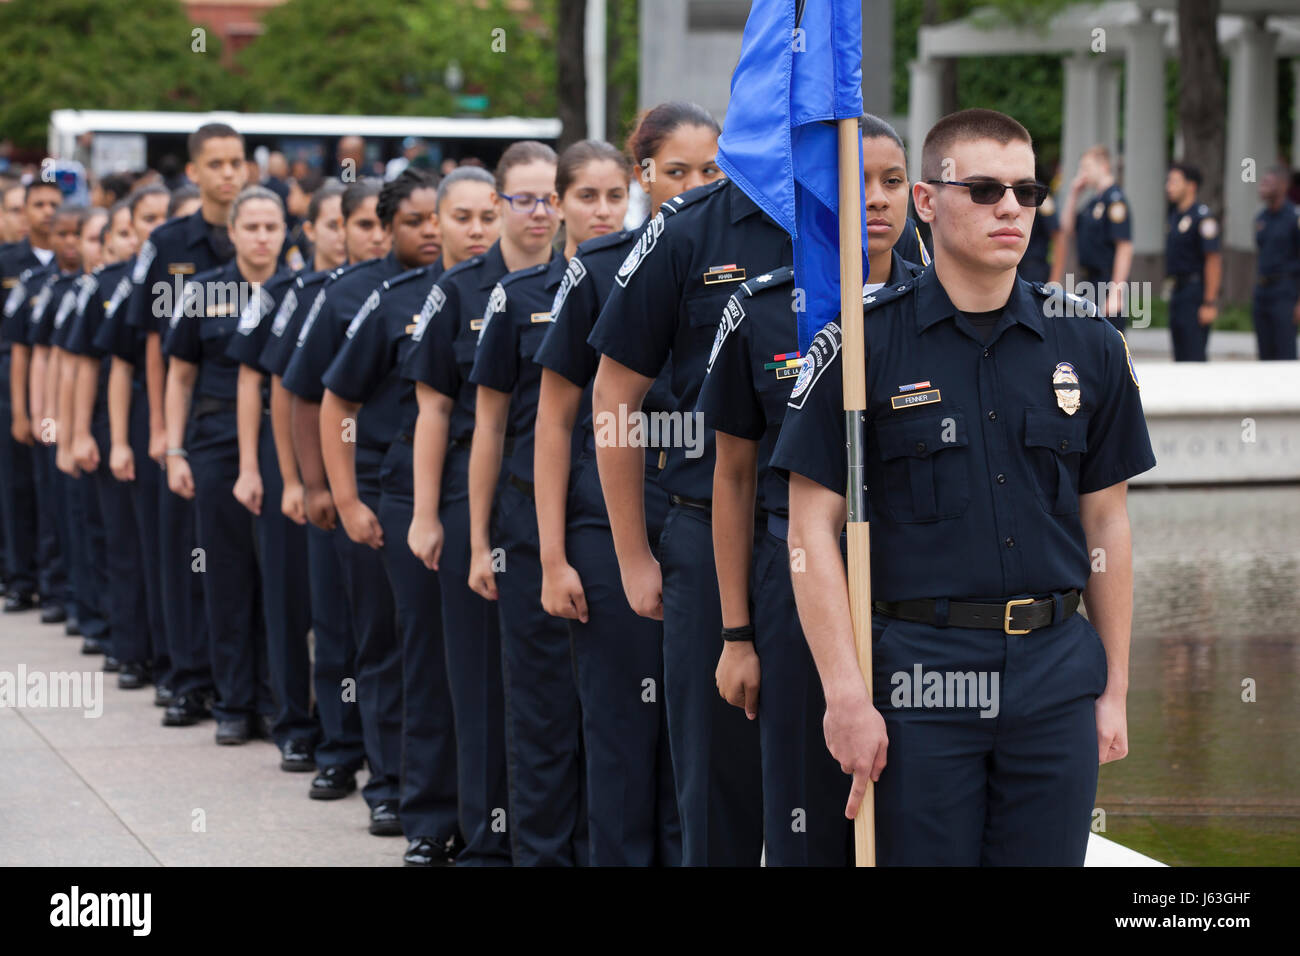 Law Enforcement Explorers (Police Explorers) pay tribute to police officers who have died in service at National - Stock Image